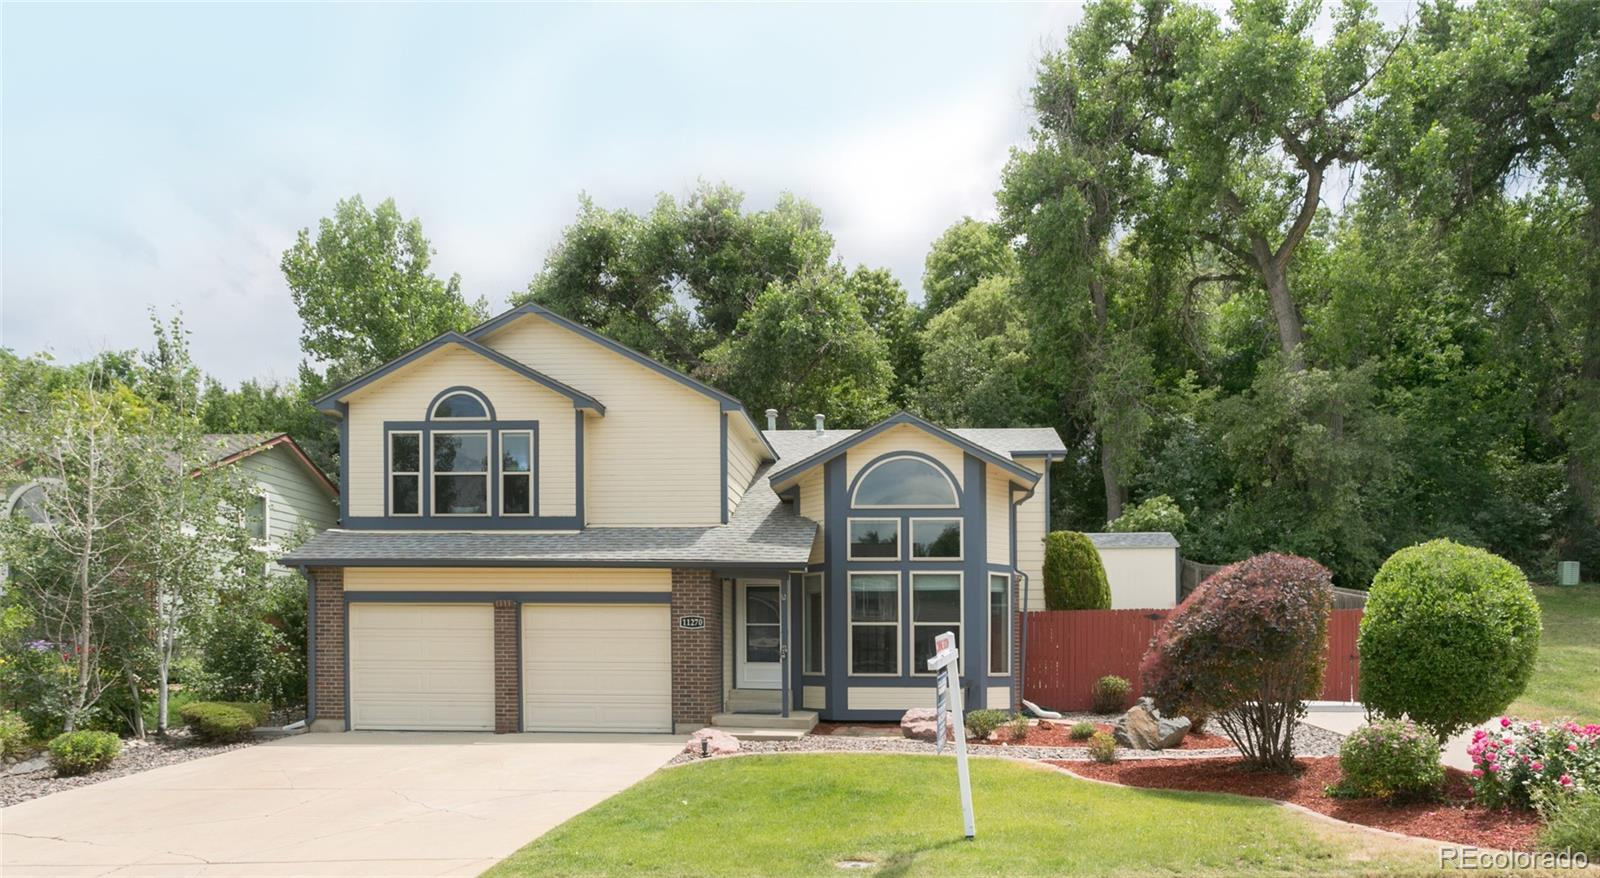 11270 W 66th Place Property Photo - Arvada, CO real estate listing